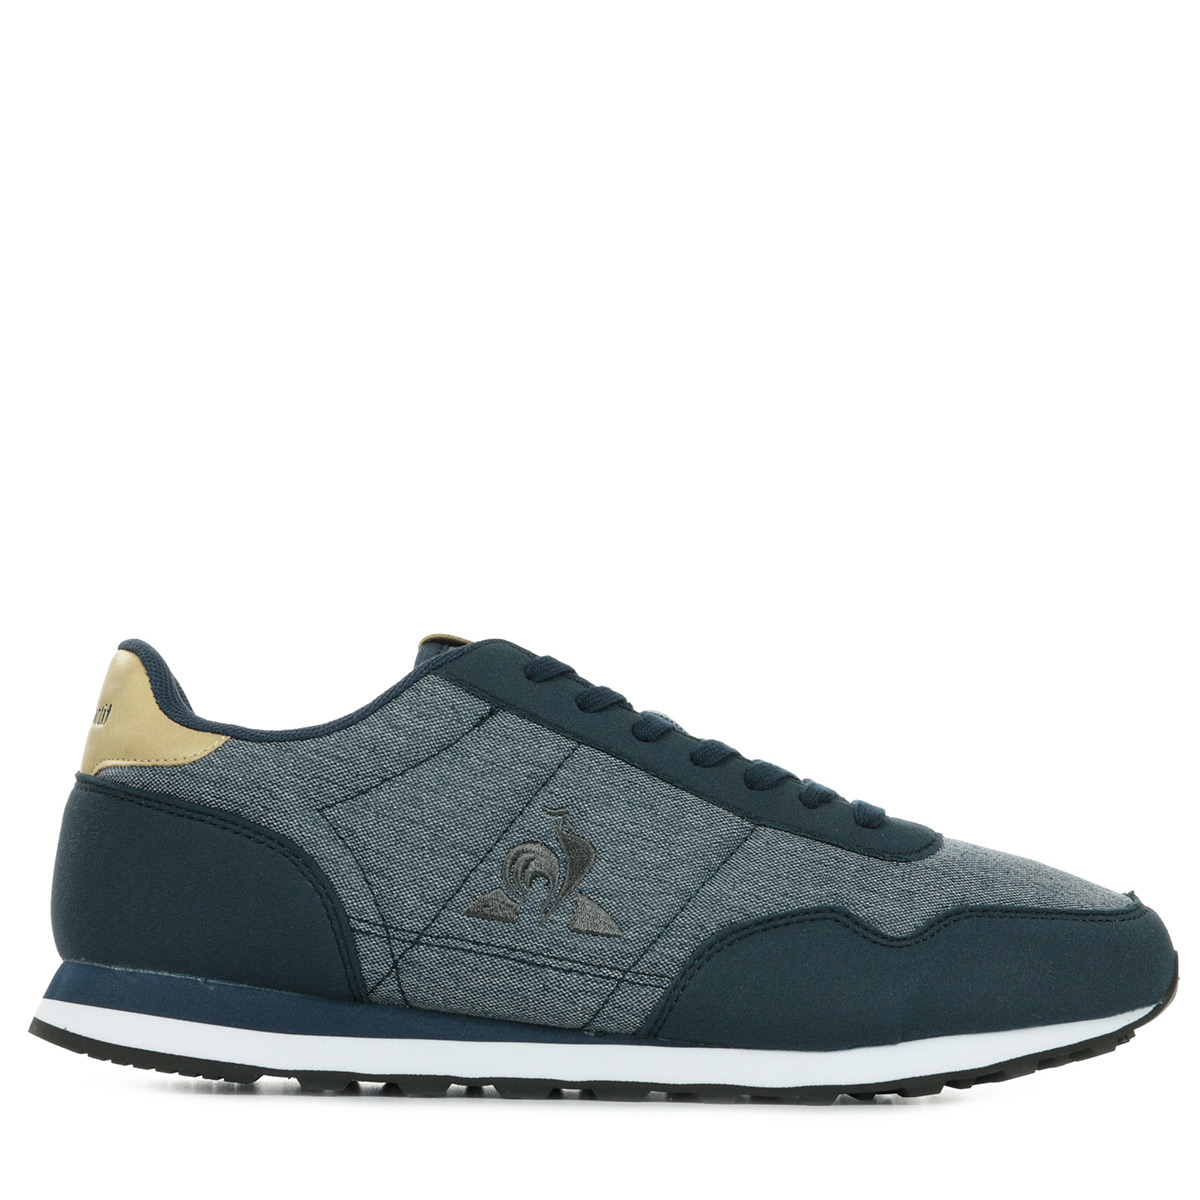 Le Coq Sportif Astra Craft